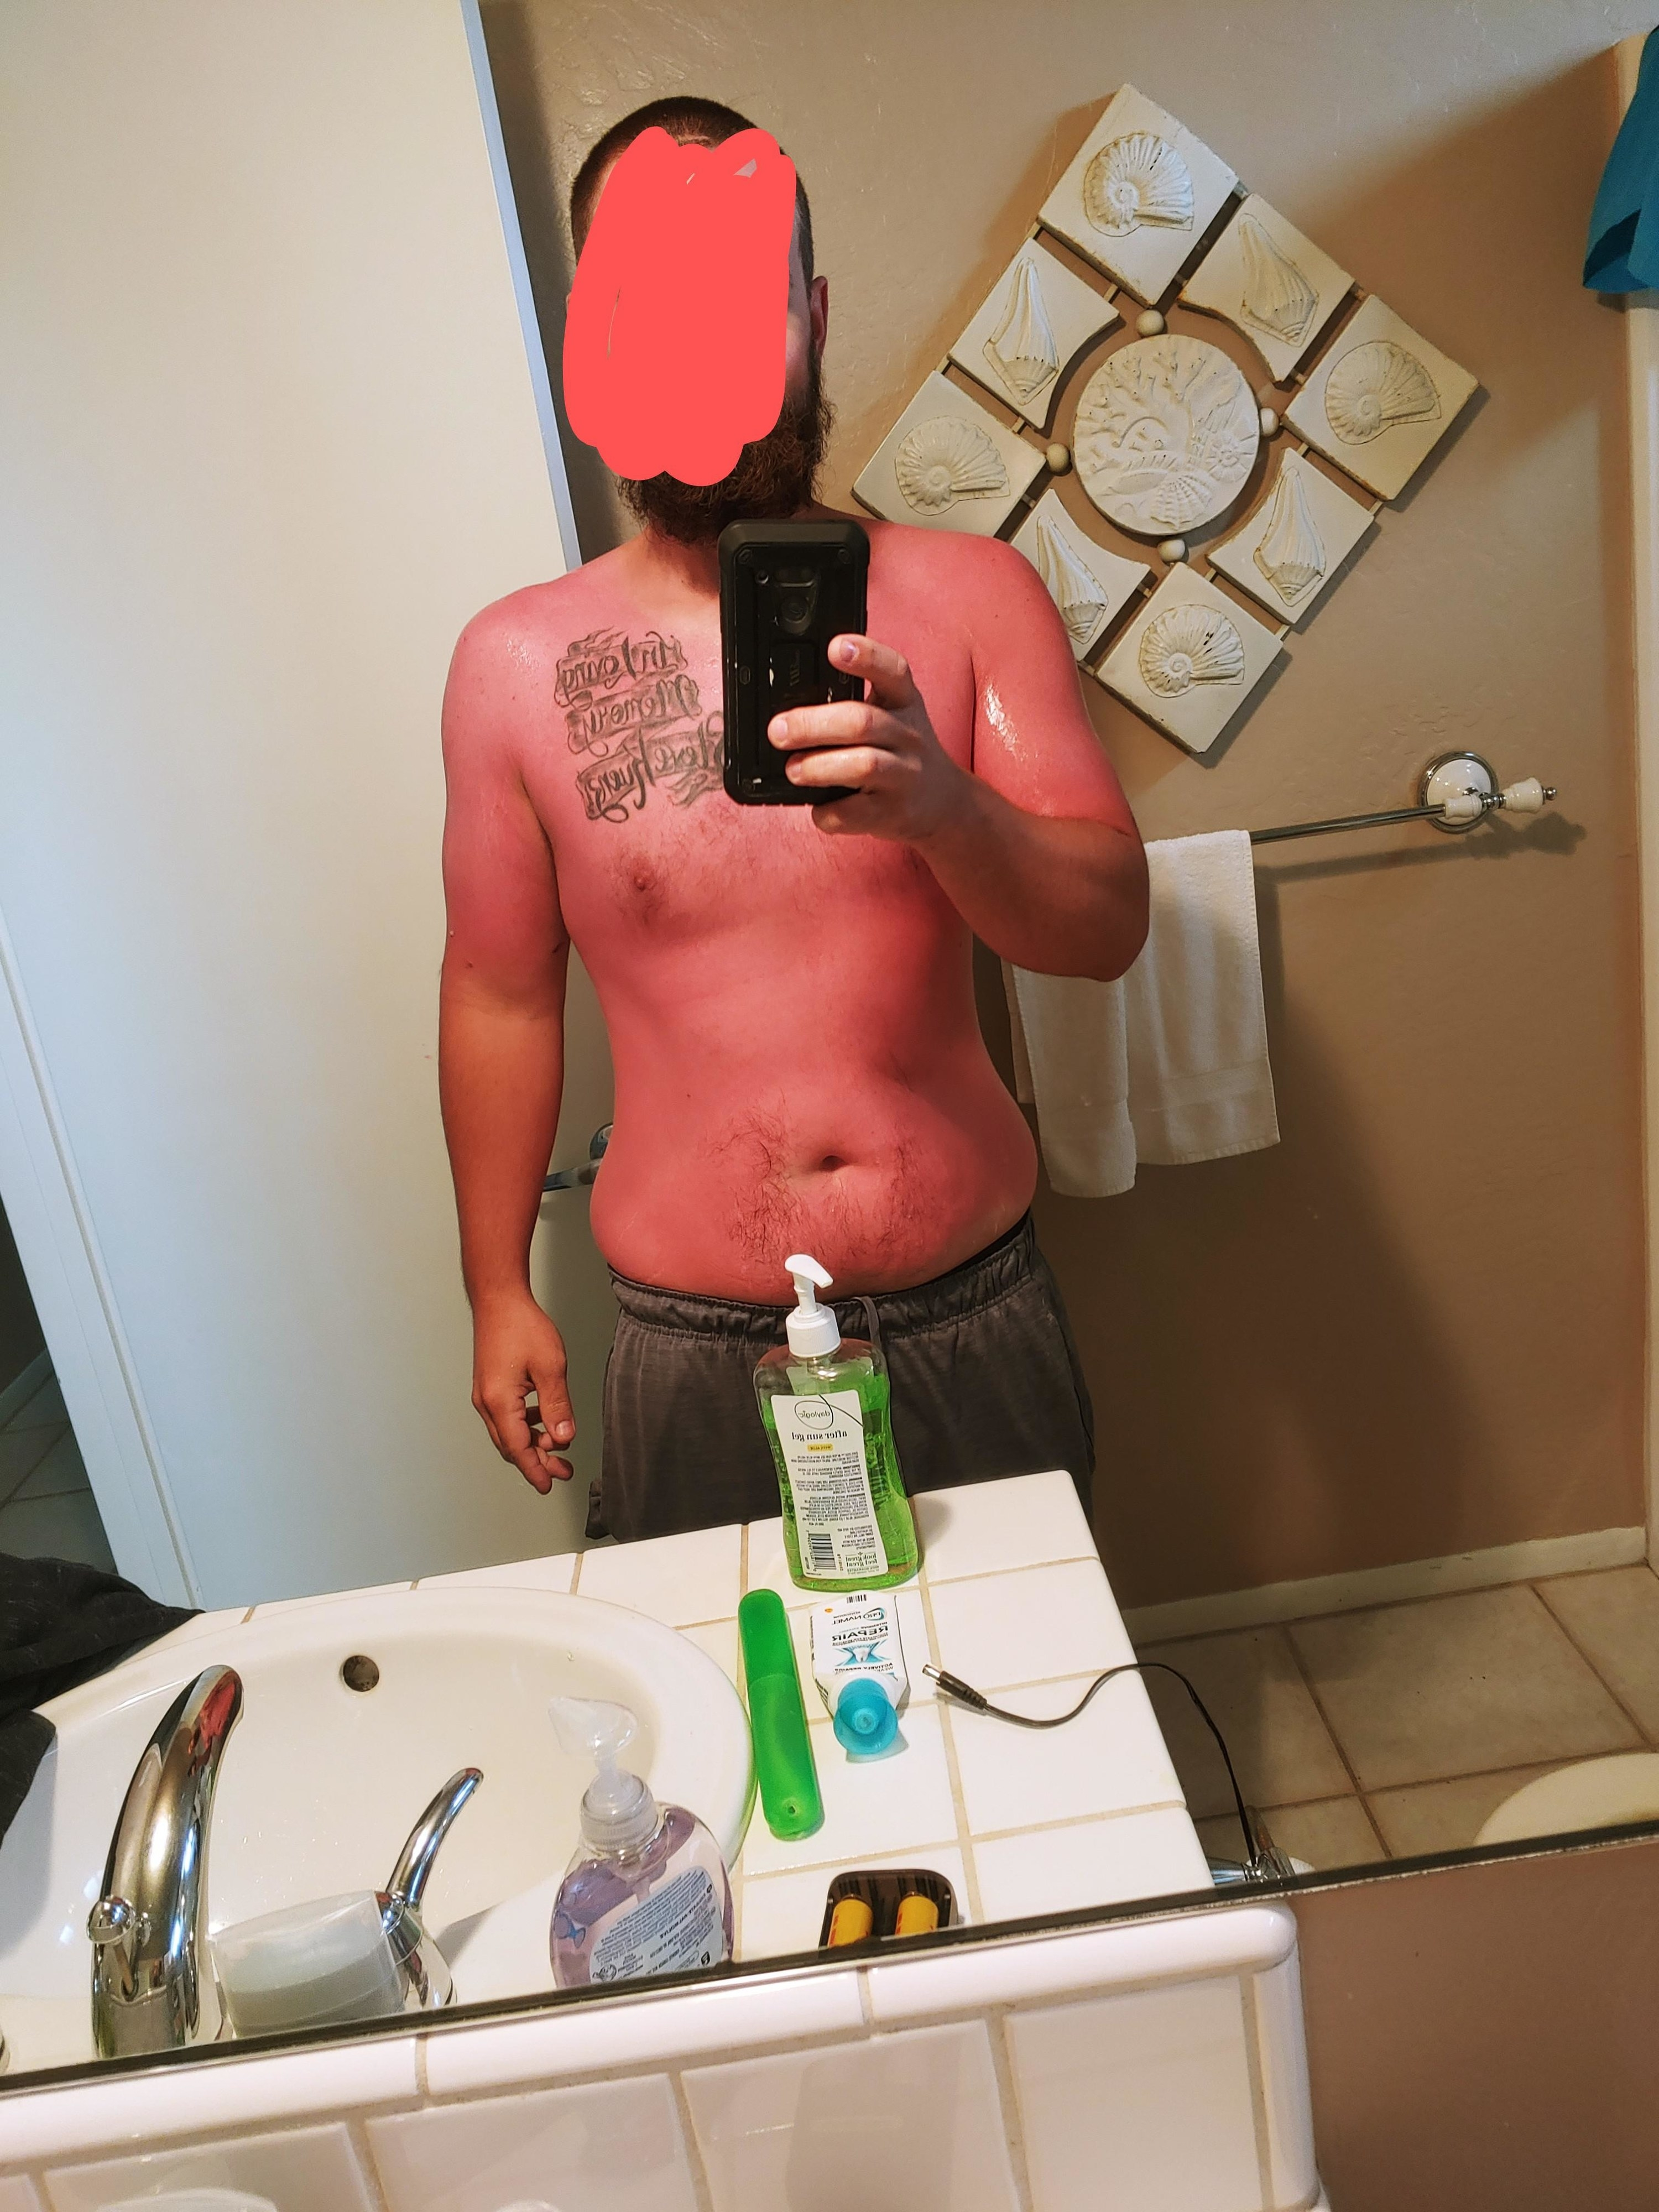 A mirror selfie of a shirtless man who is very sunburned